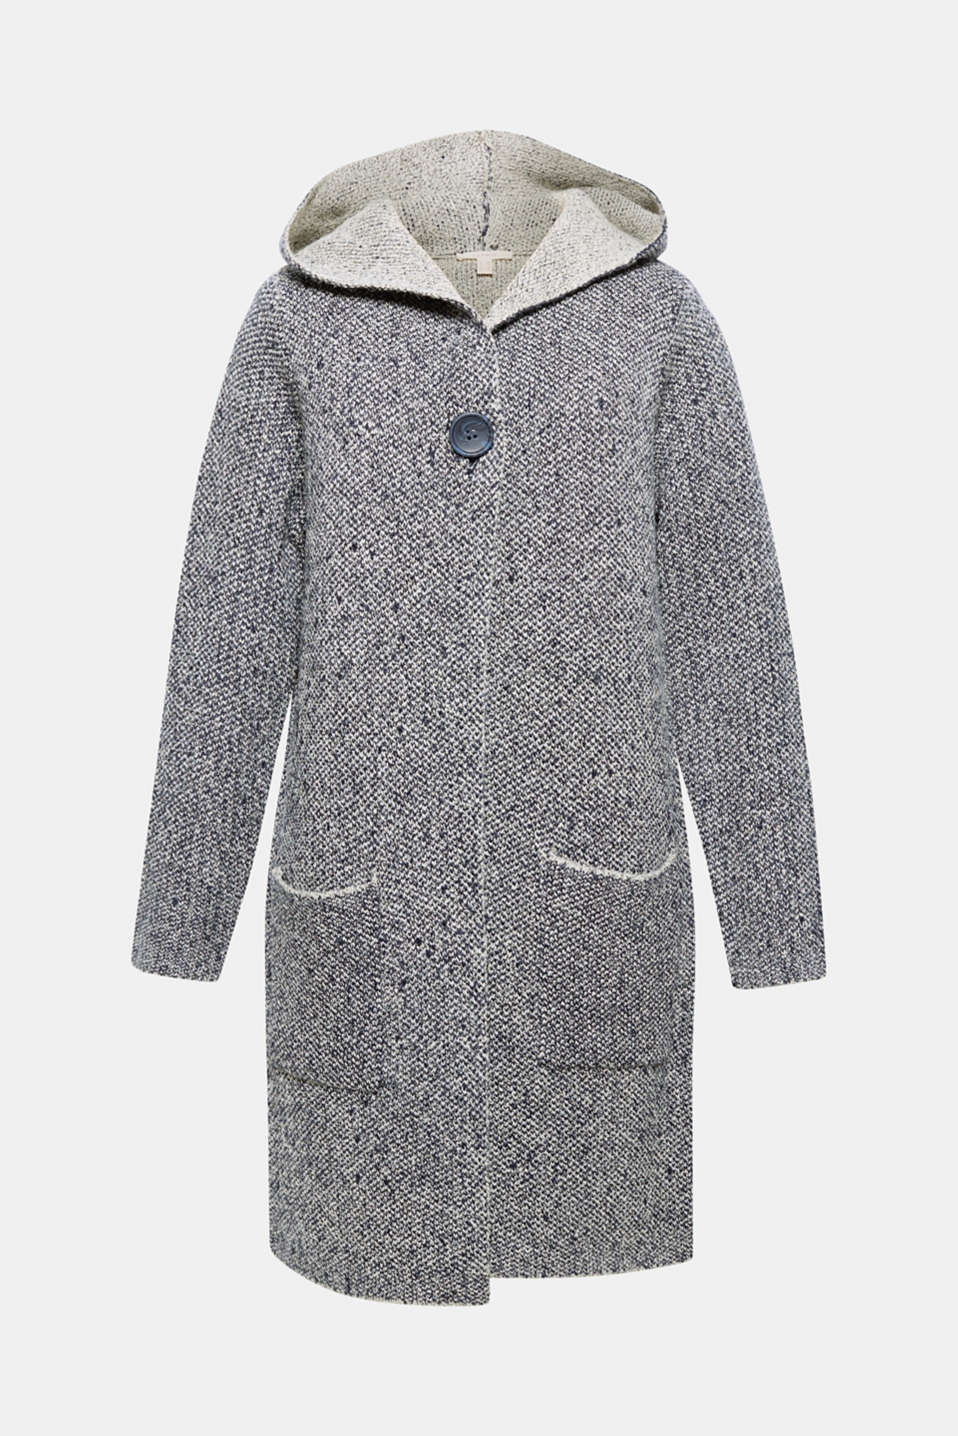 This textured long cardigan with a wide hood and double-faced look will keep you nice and warm on cool days!